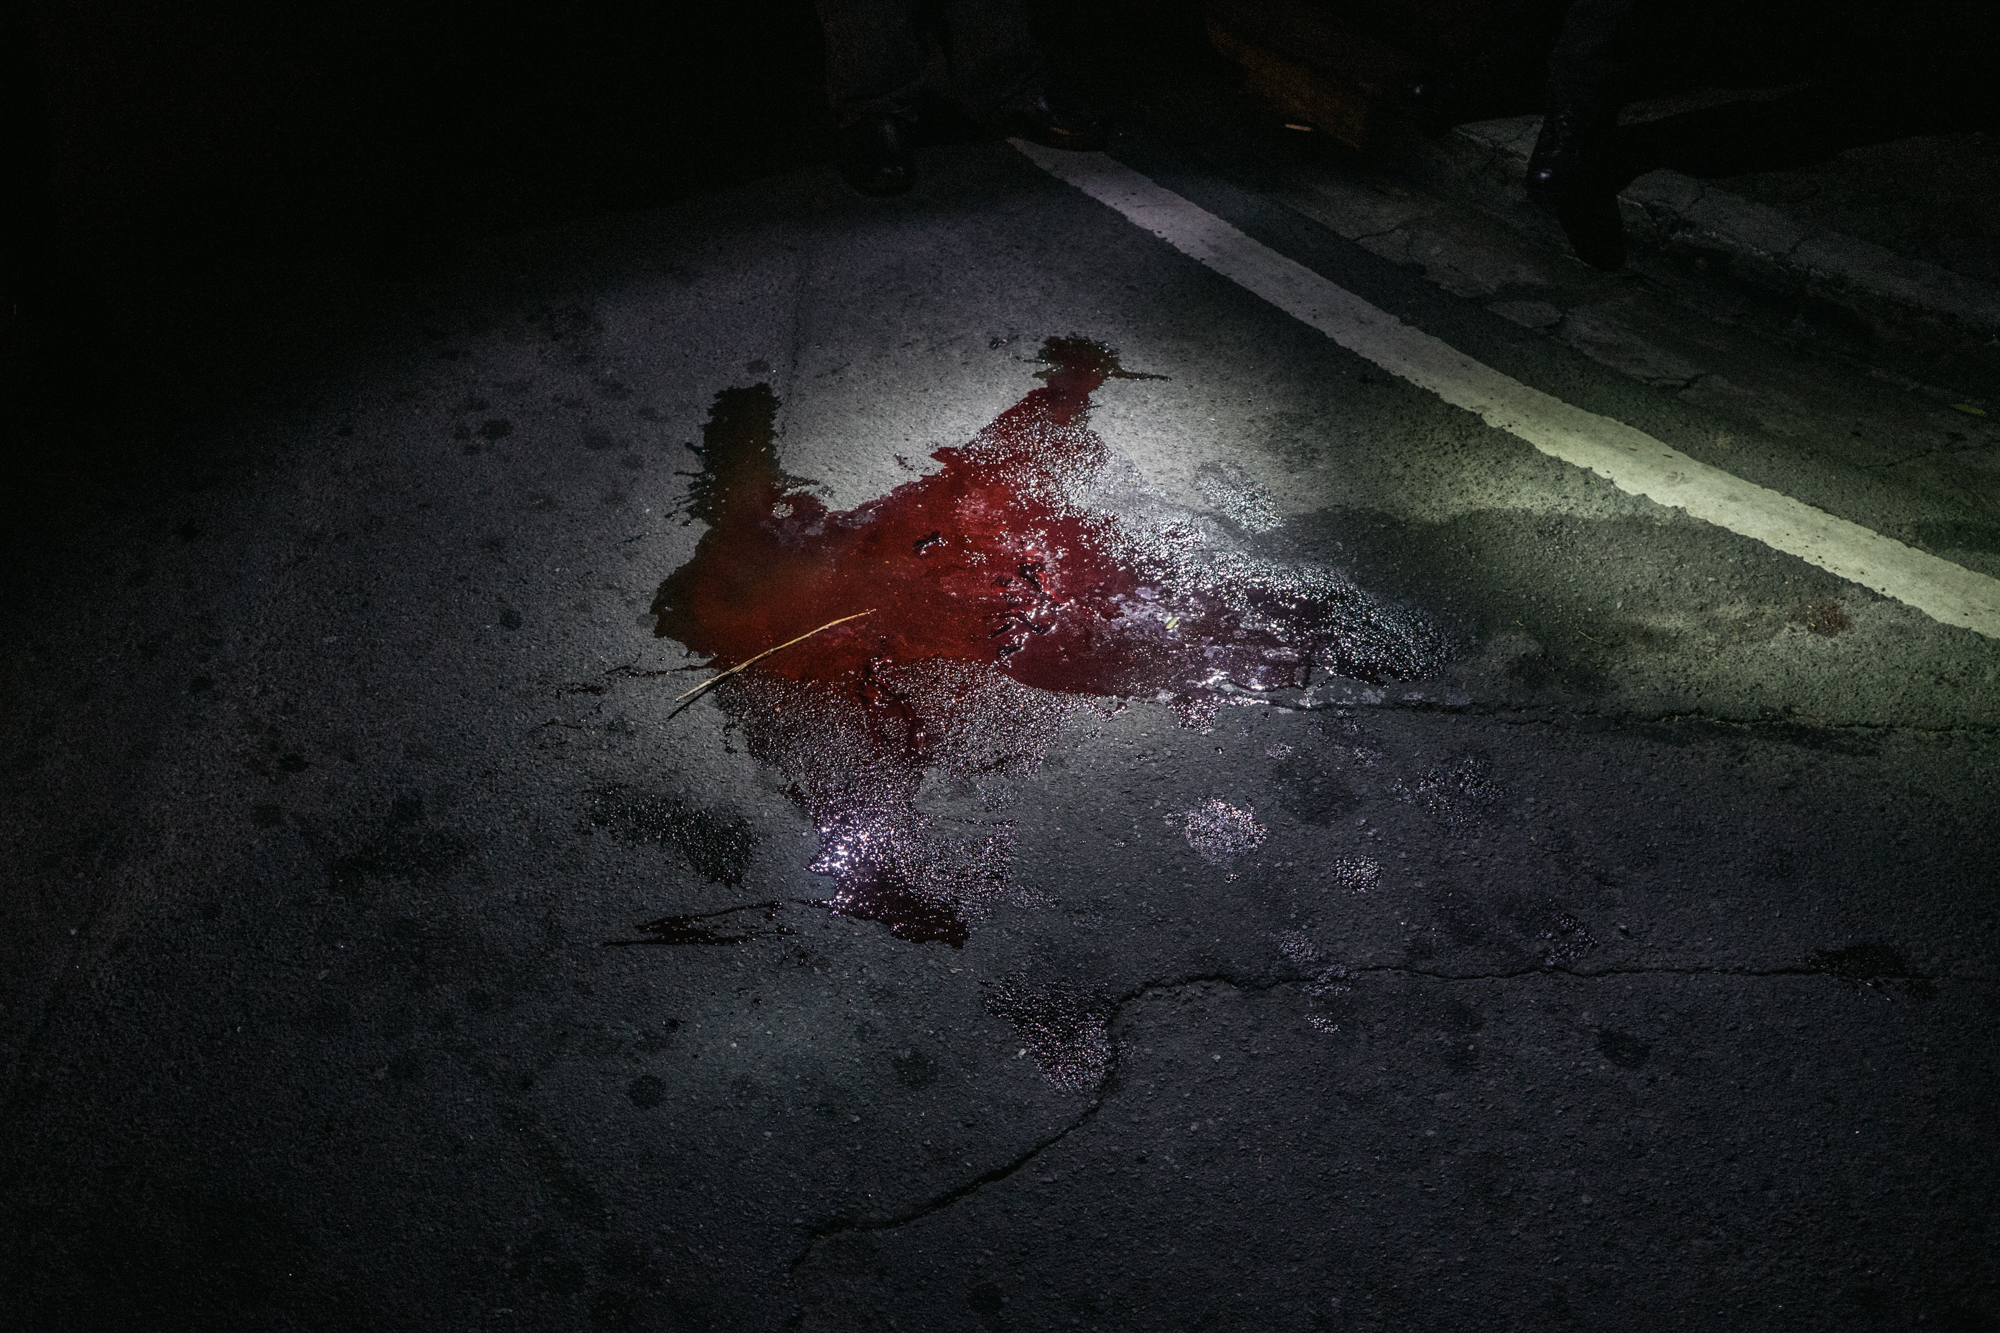 Blood from a gun shot is seen on the streets of Metro Manila.